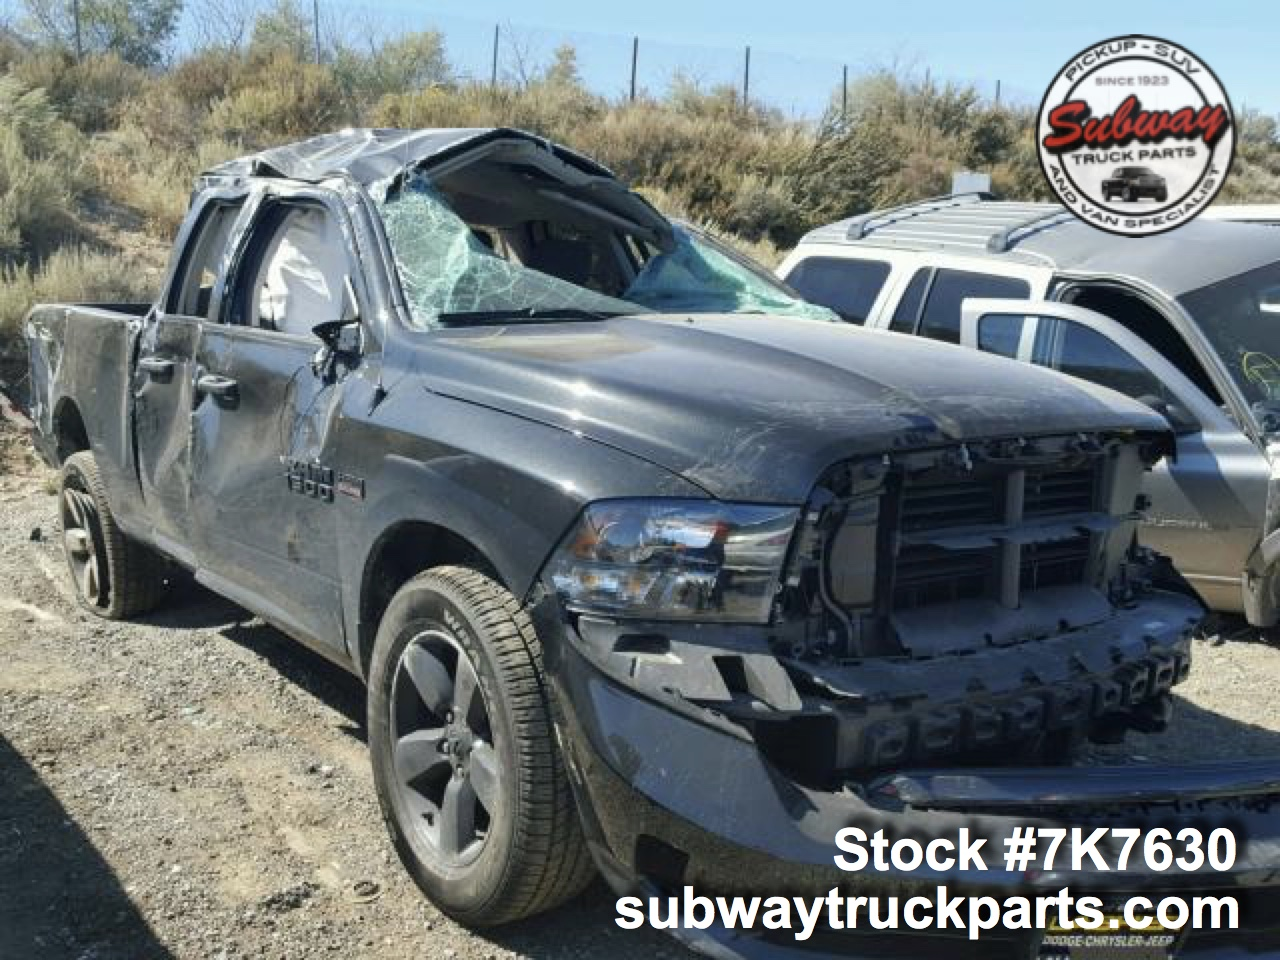 used parts 2017 dodge ram 1500 5 7l hemi 4x4 subway truck parts inc. Black Bedroom Furniture Sets. Home Design Ideas